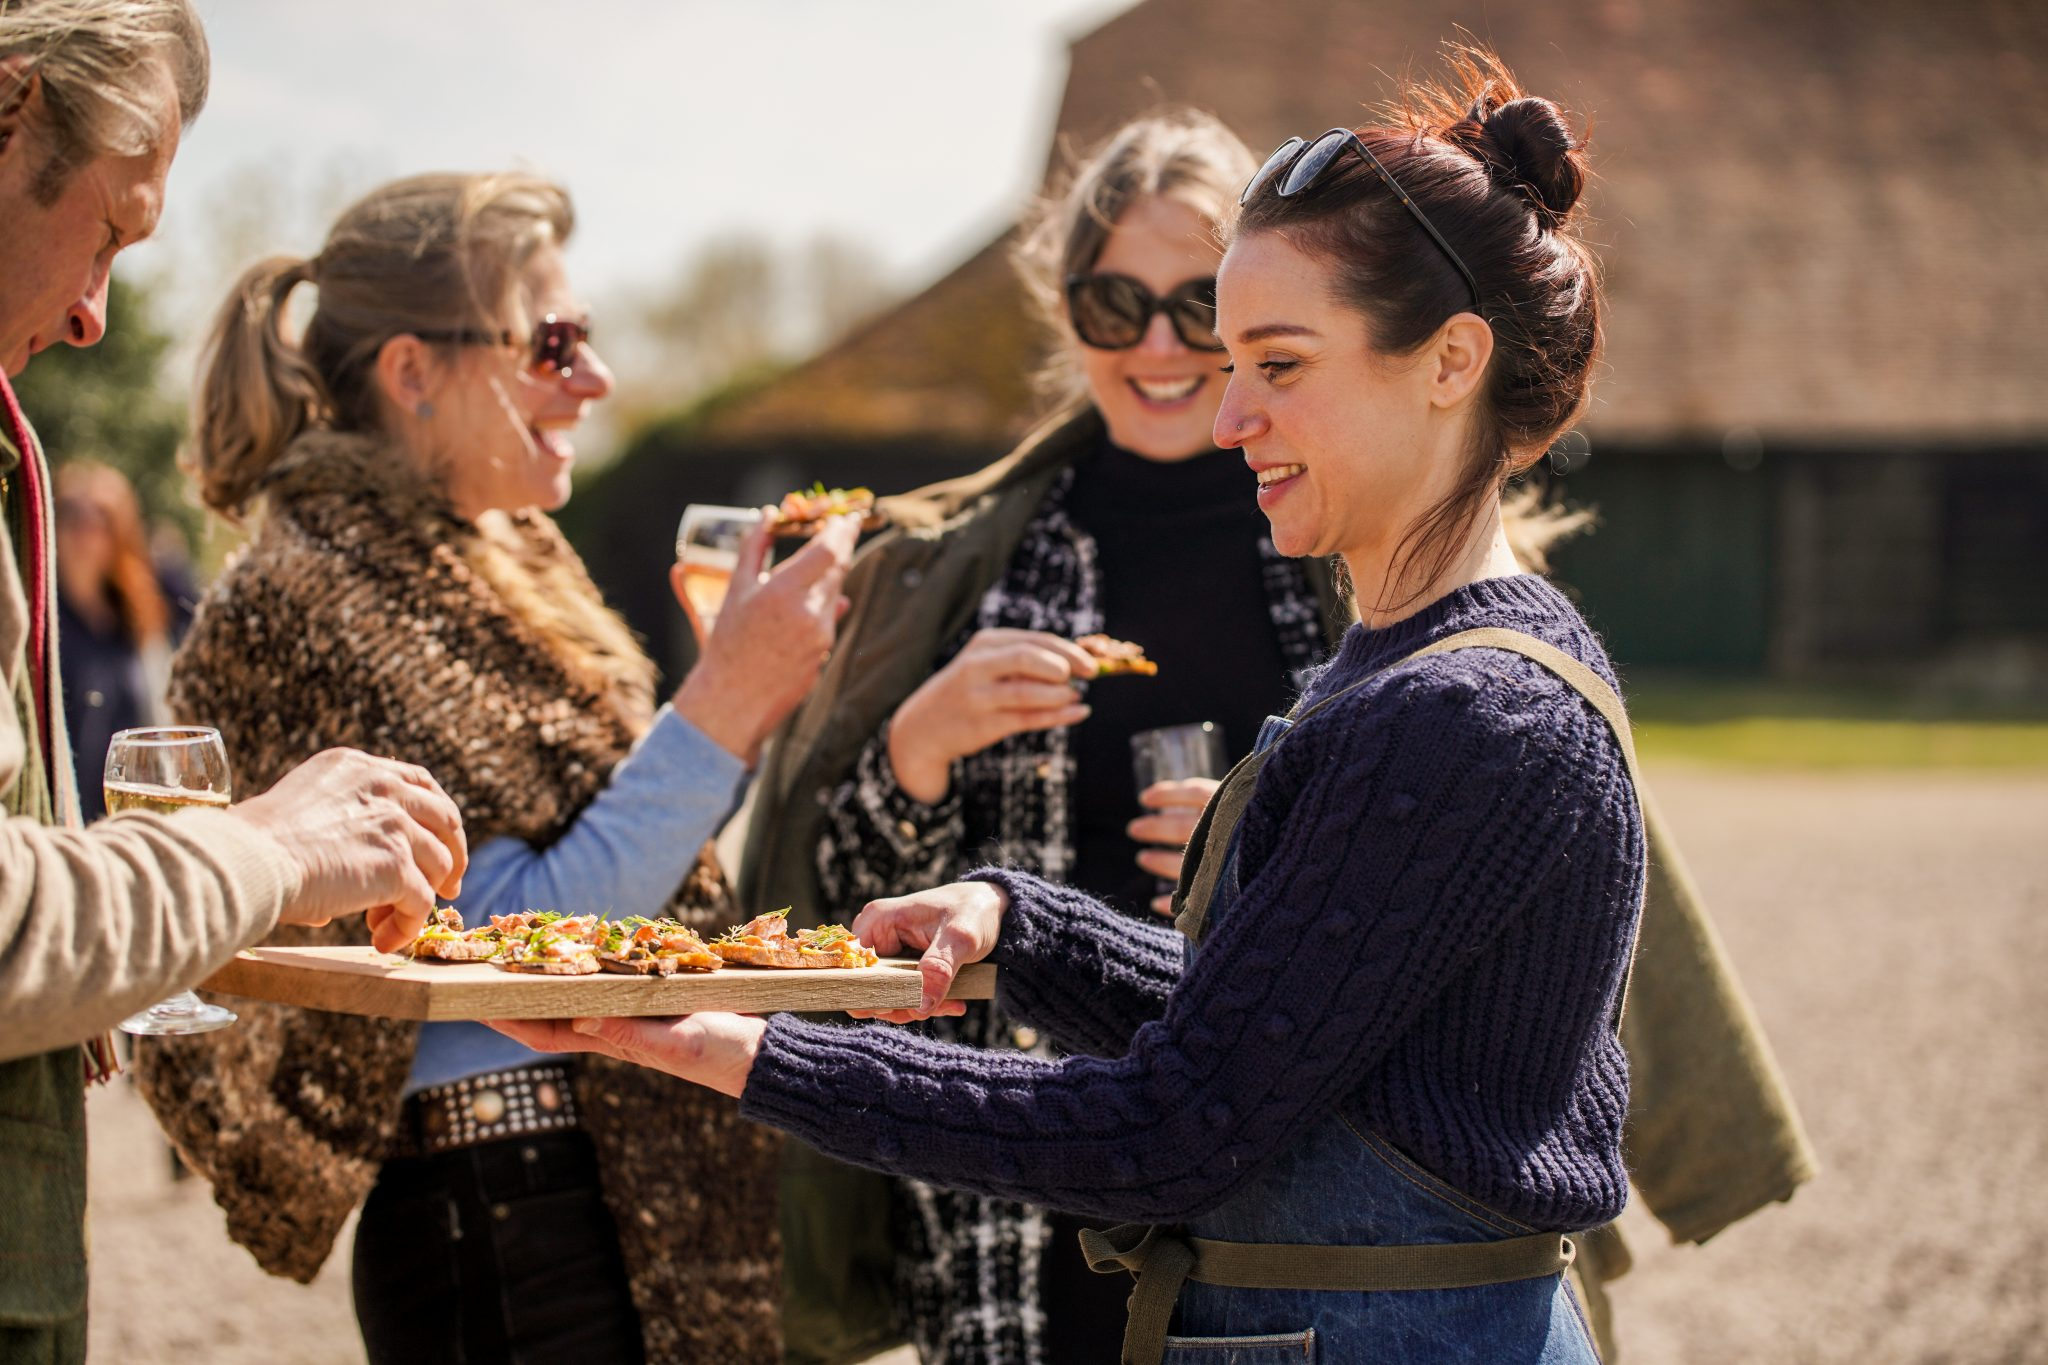 Outdoor dining wood fire cooking feast events, vineyard dining experience